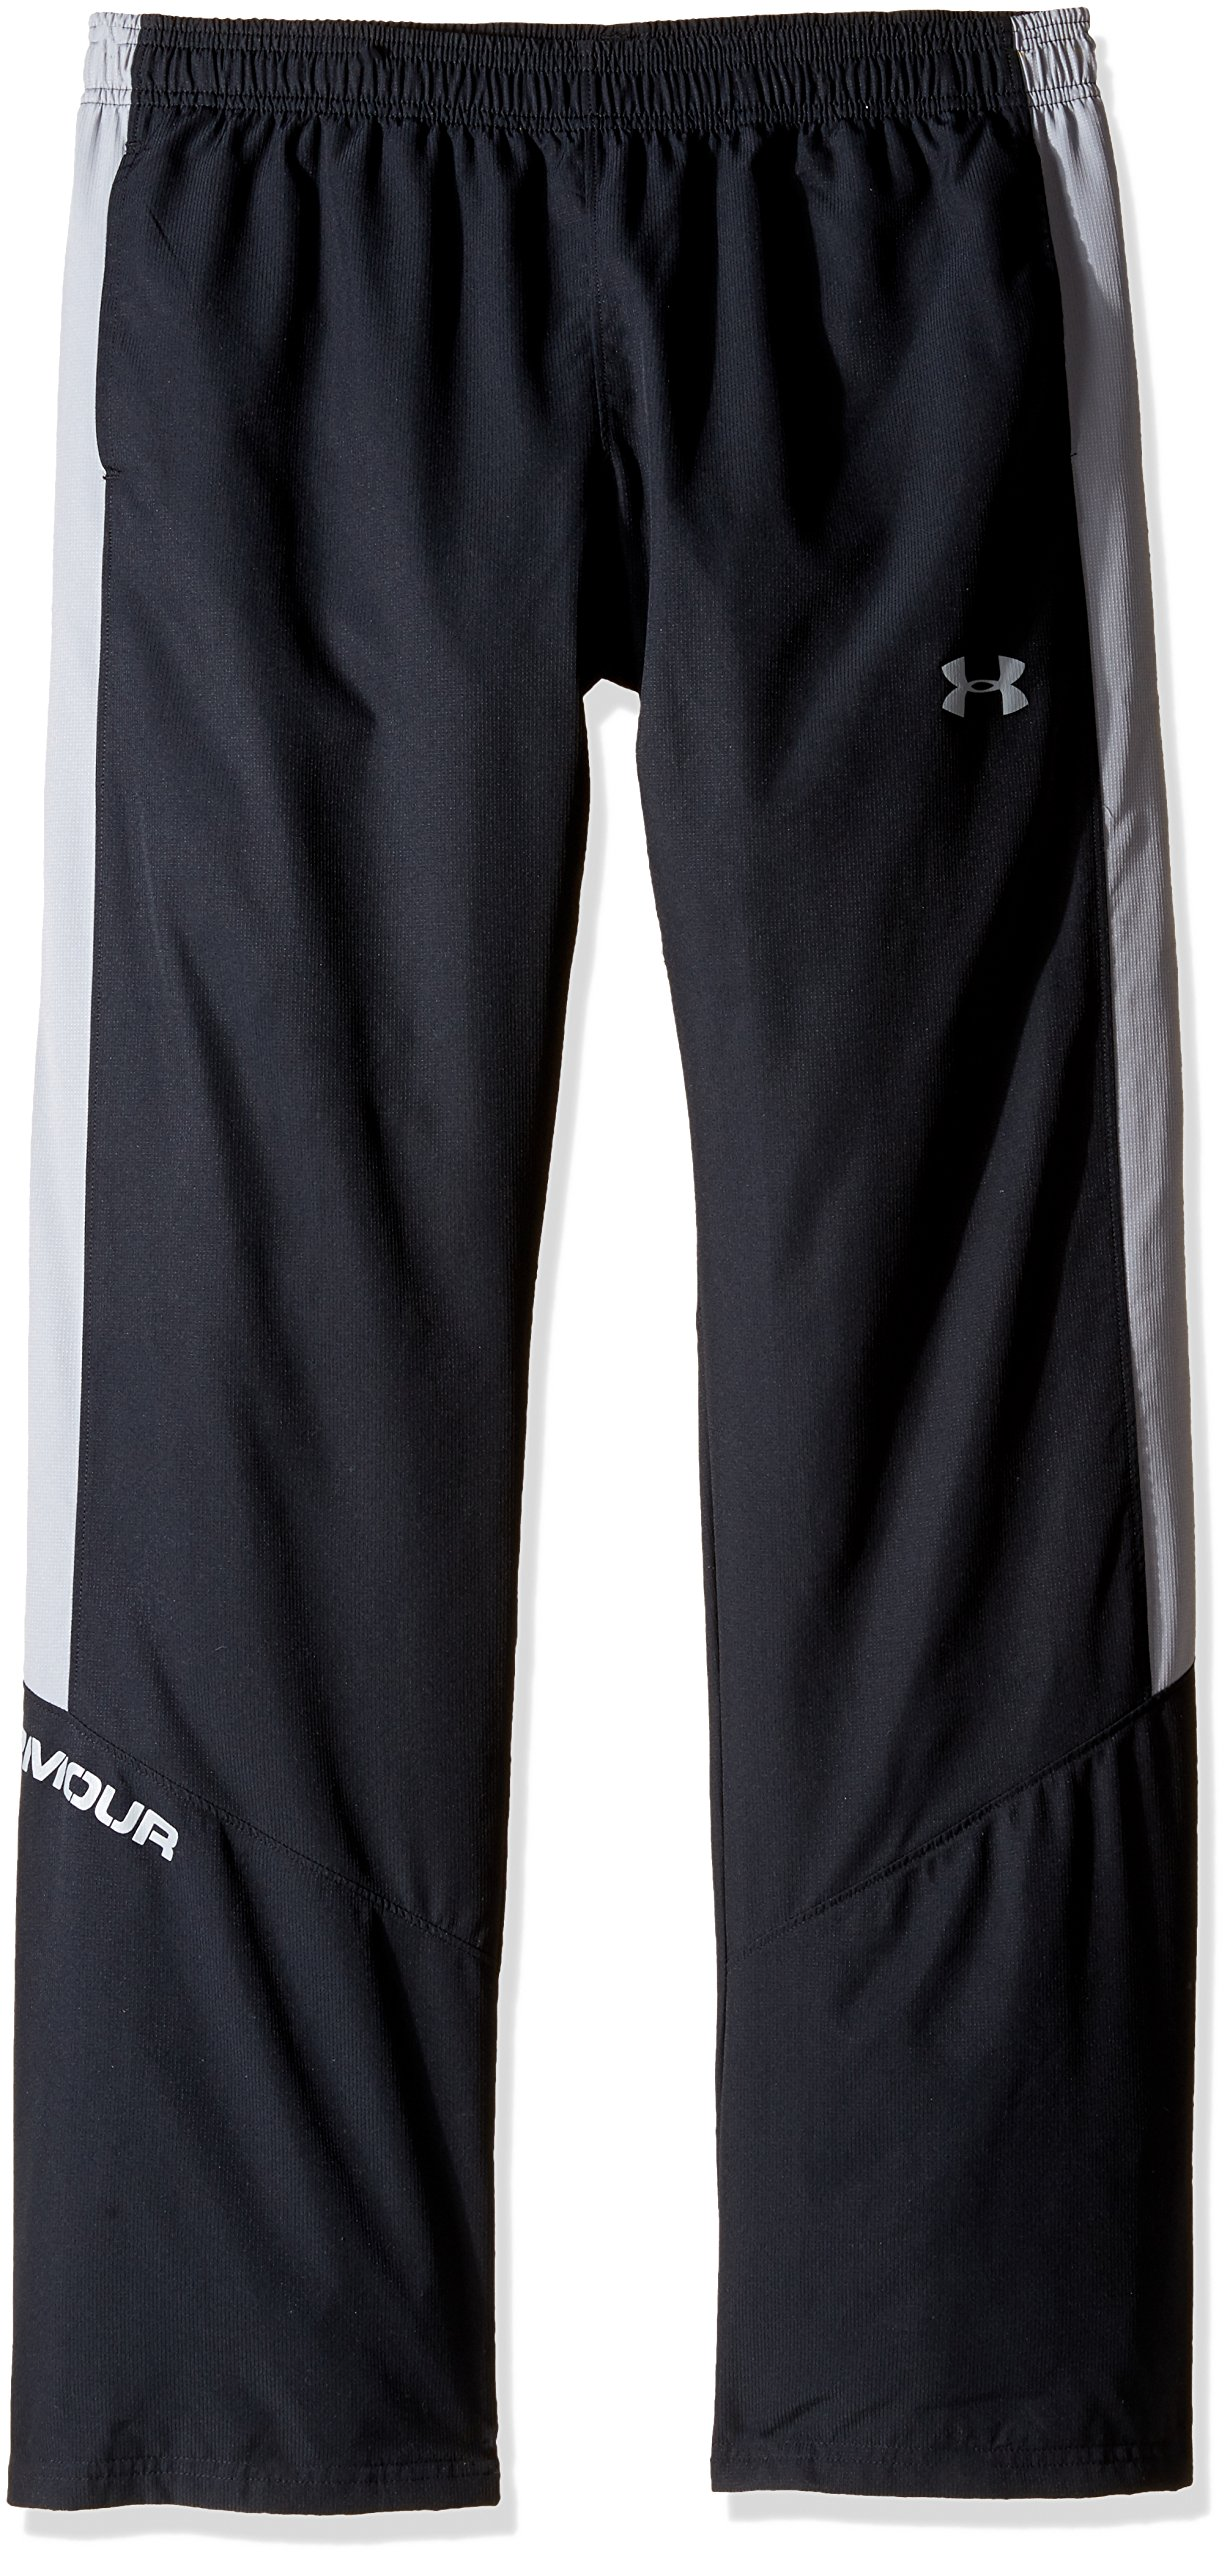 Under Armour Boys' Main Enforcer Woven Pants, Black /Steel, Youth Small by Under Armour